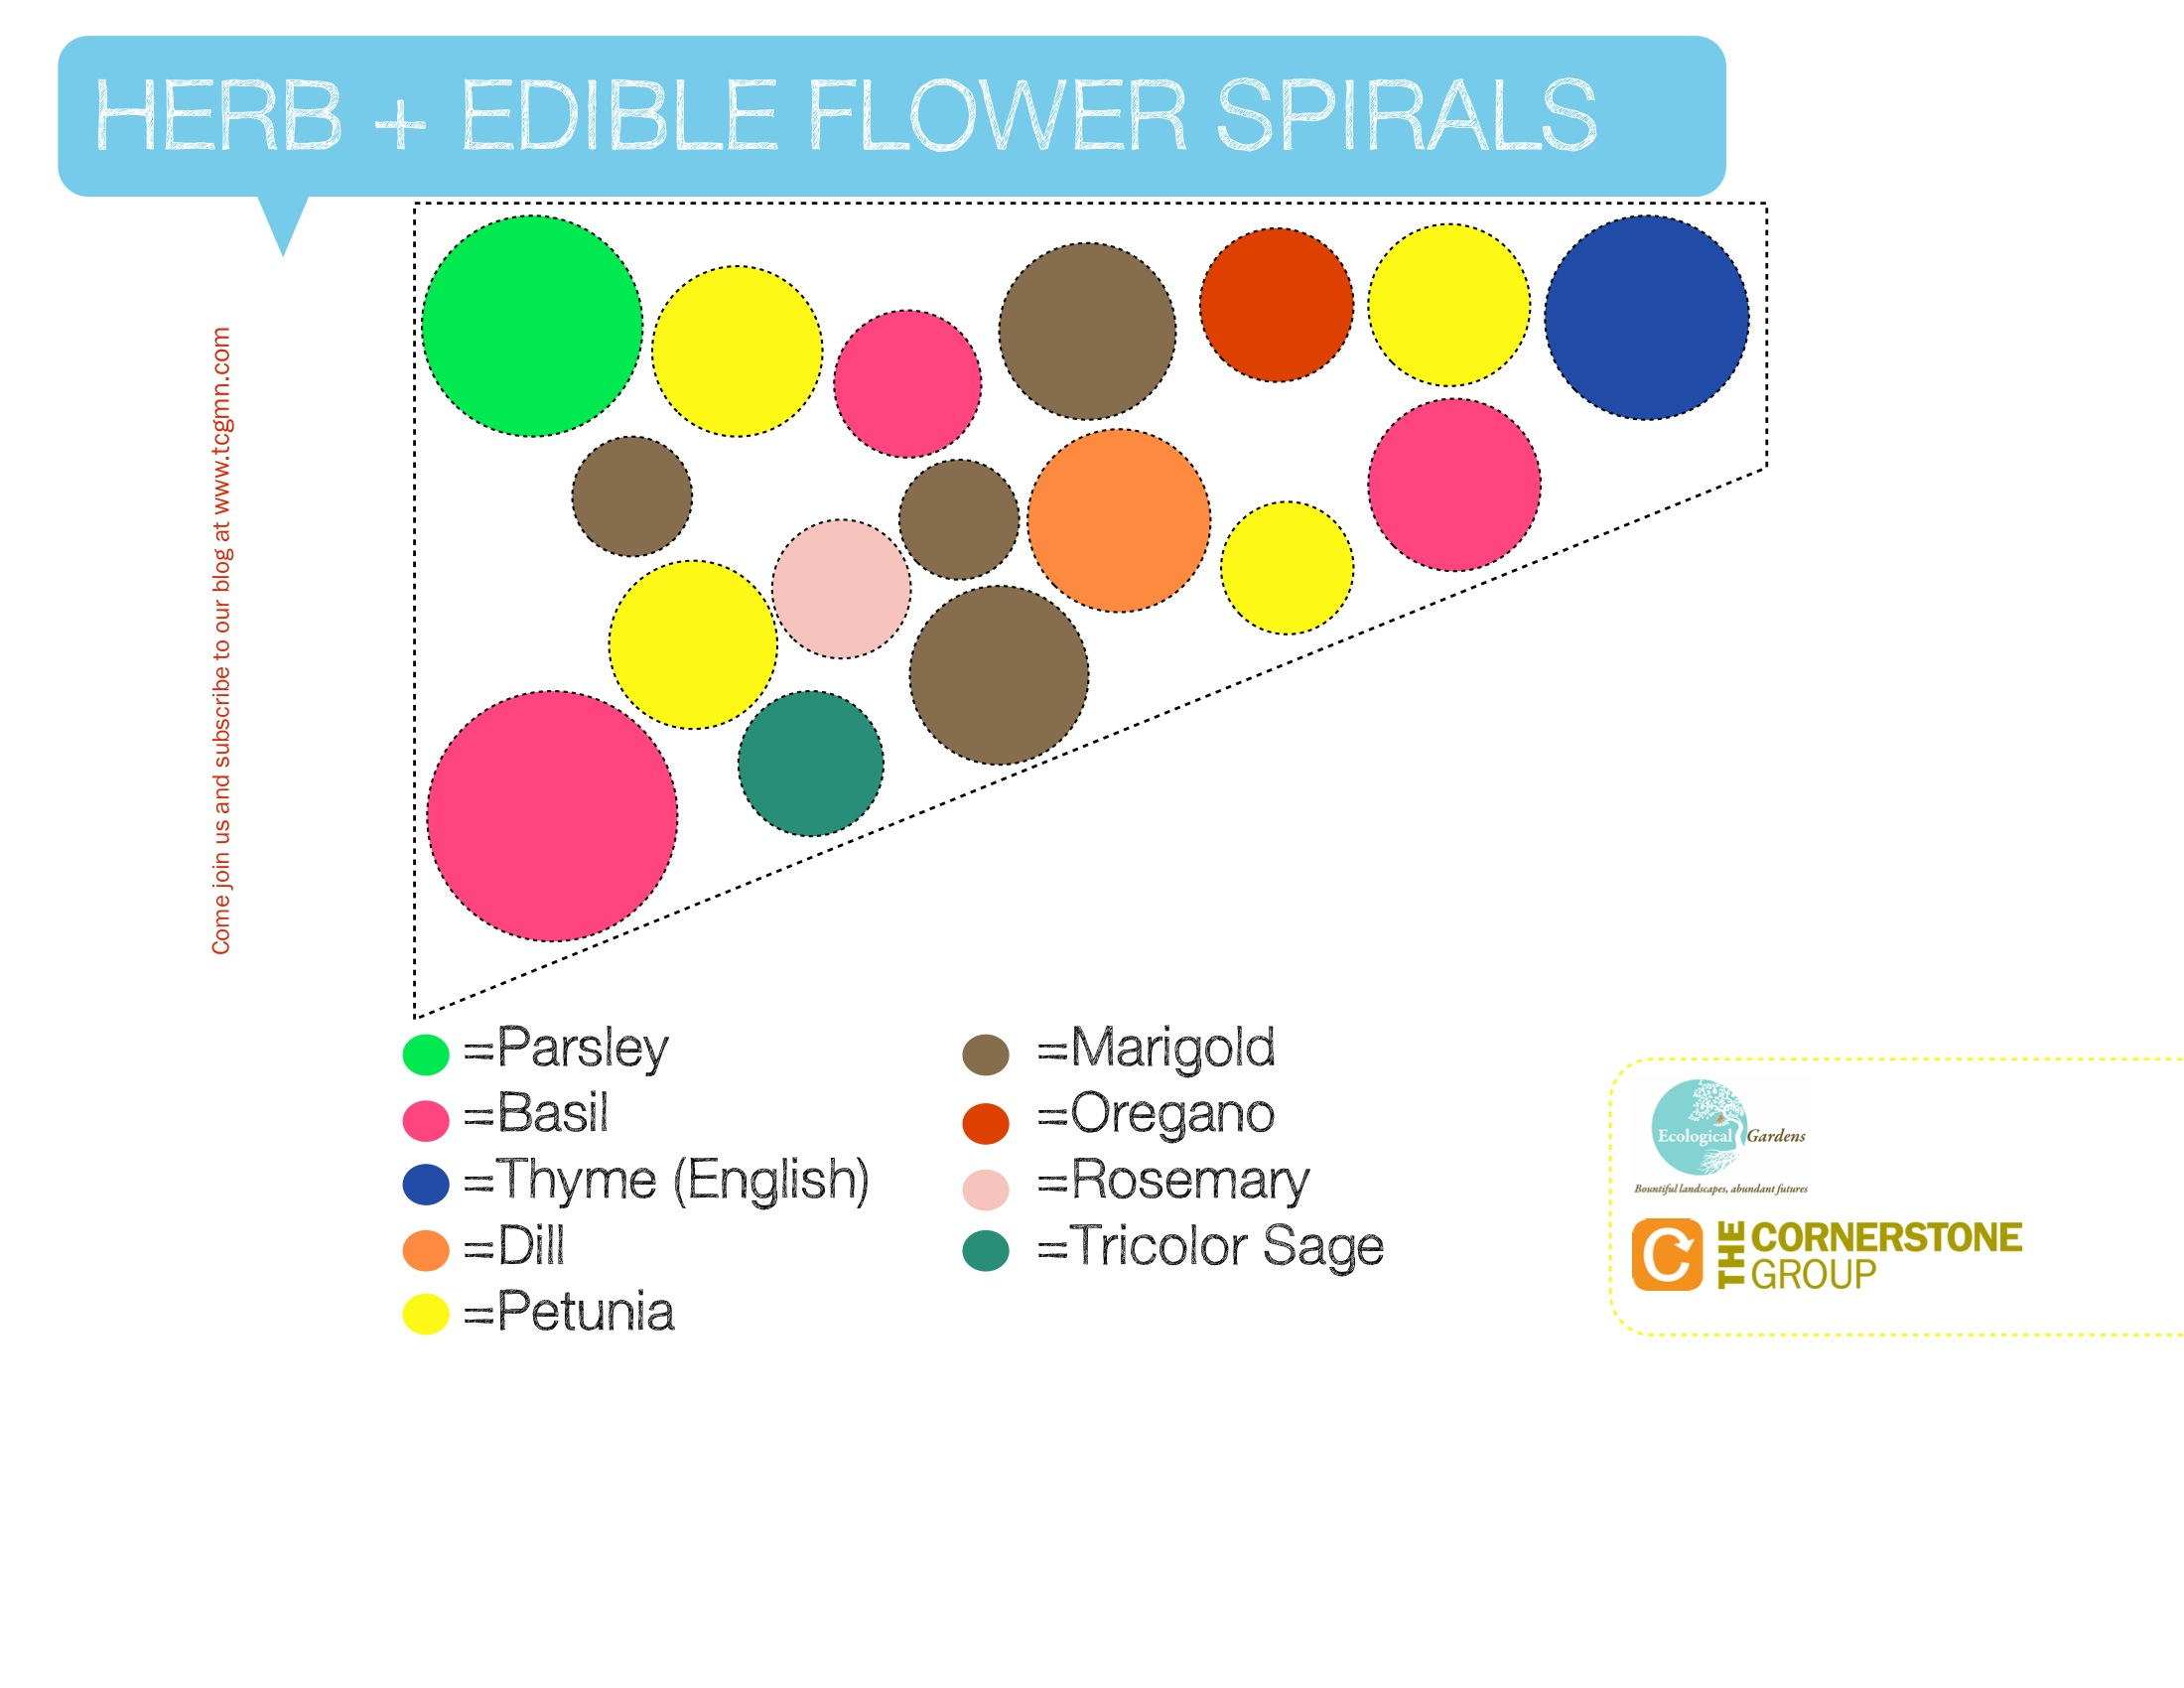 herb-edible-flower-spirals